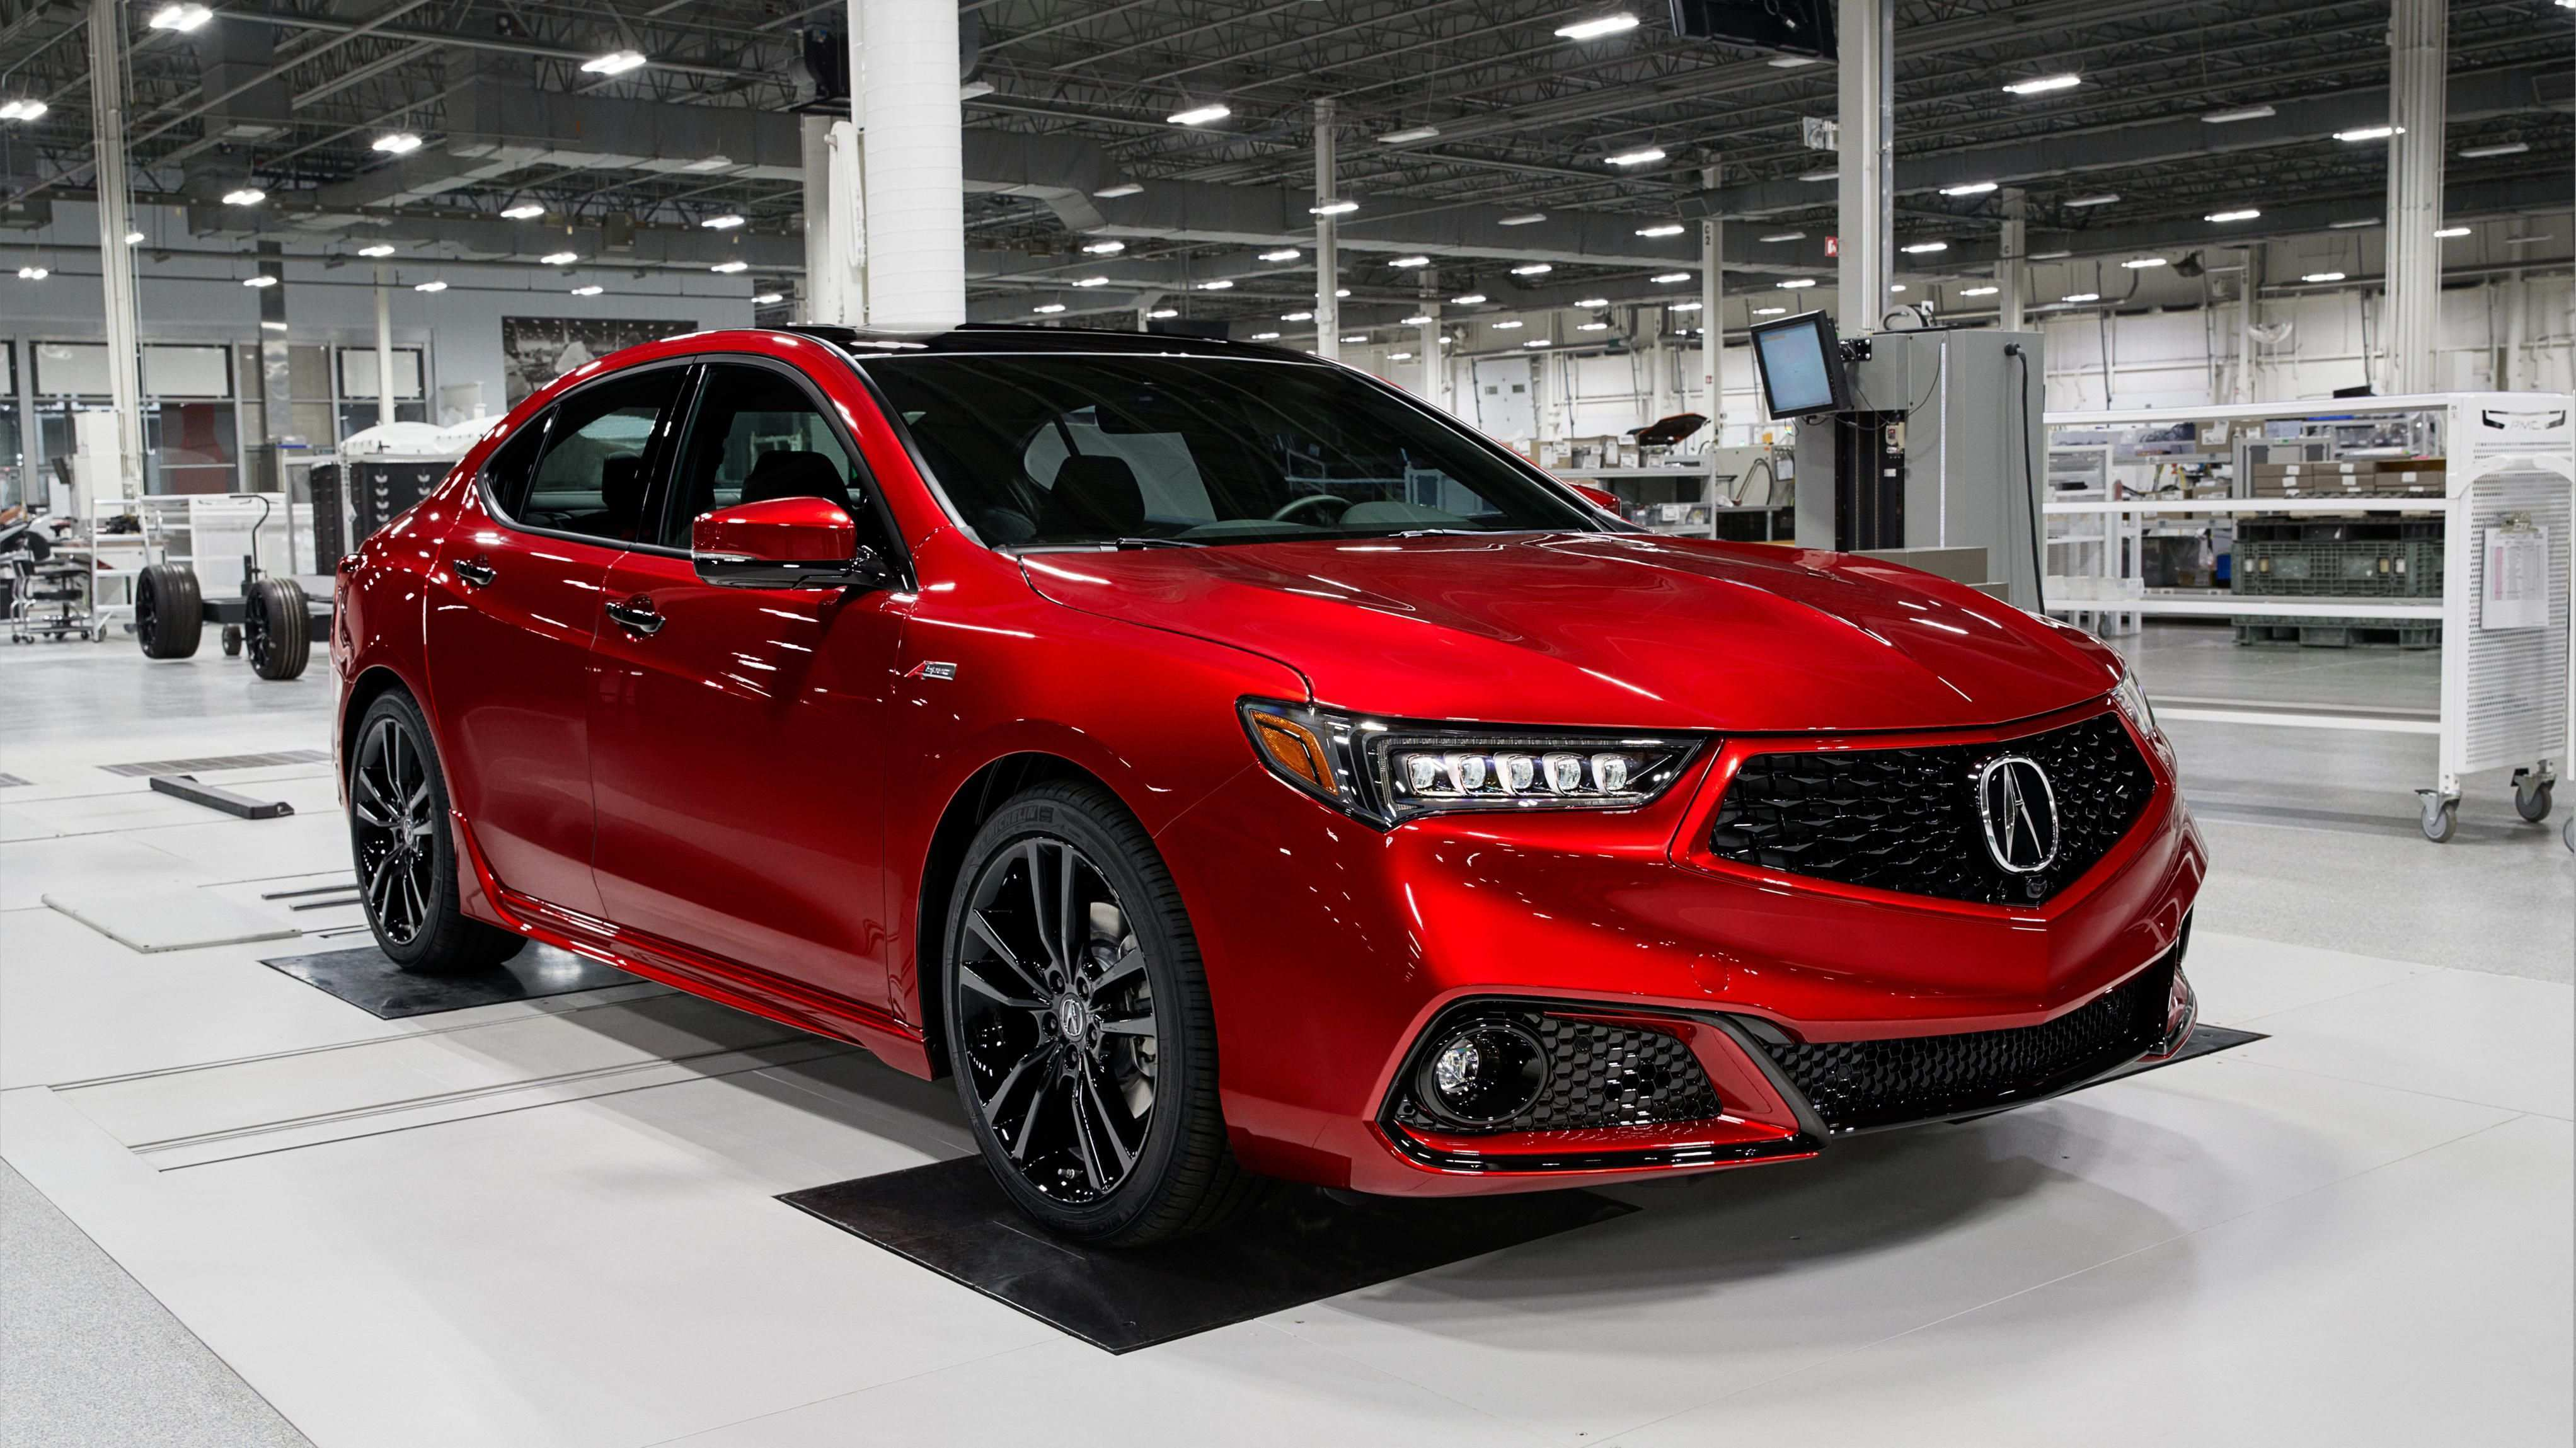 35 New 2020 Acura Vehicles Price Design And Review